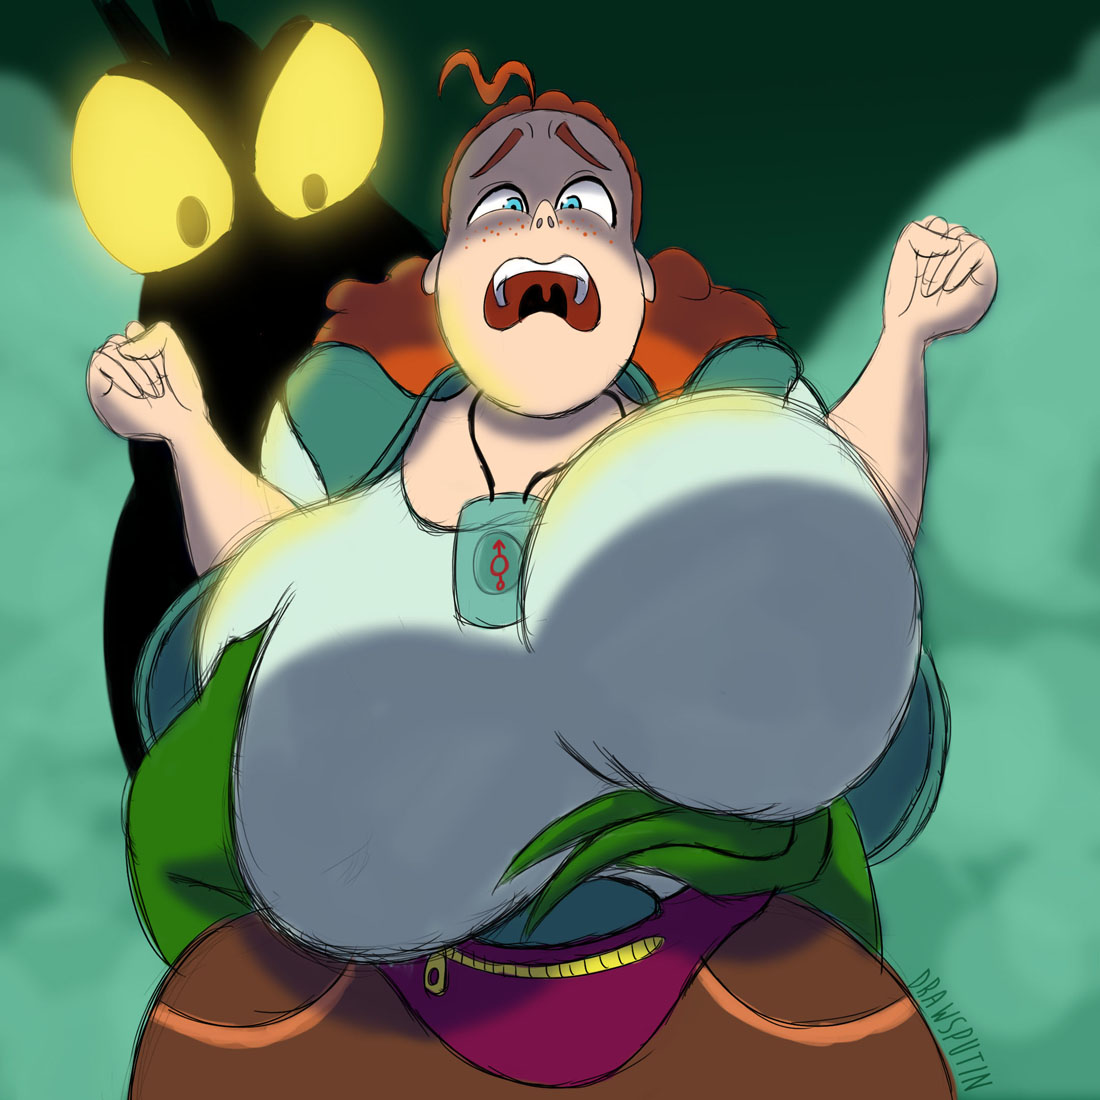 the whale bubbie from flapjack Star vs the forces of evil futanari